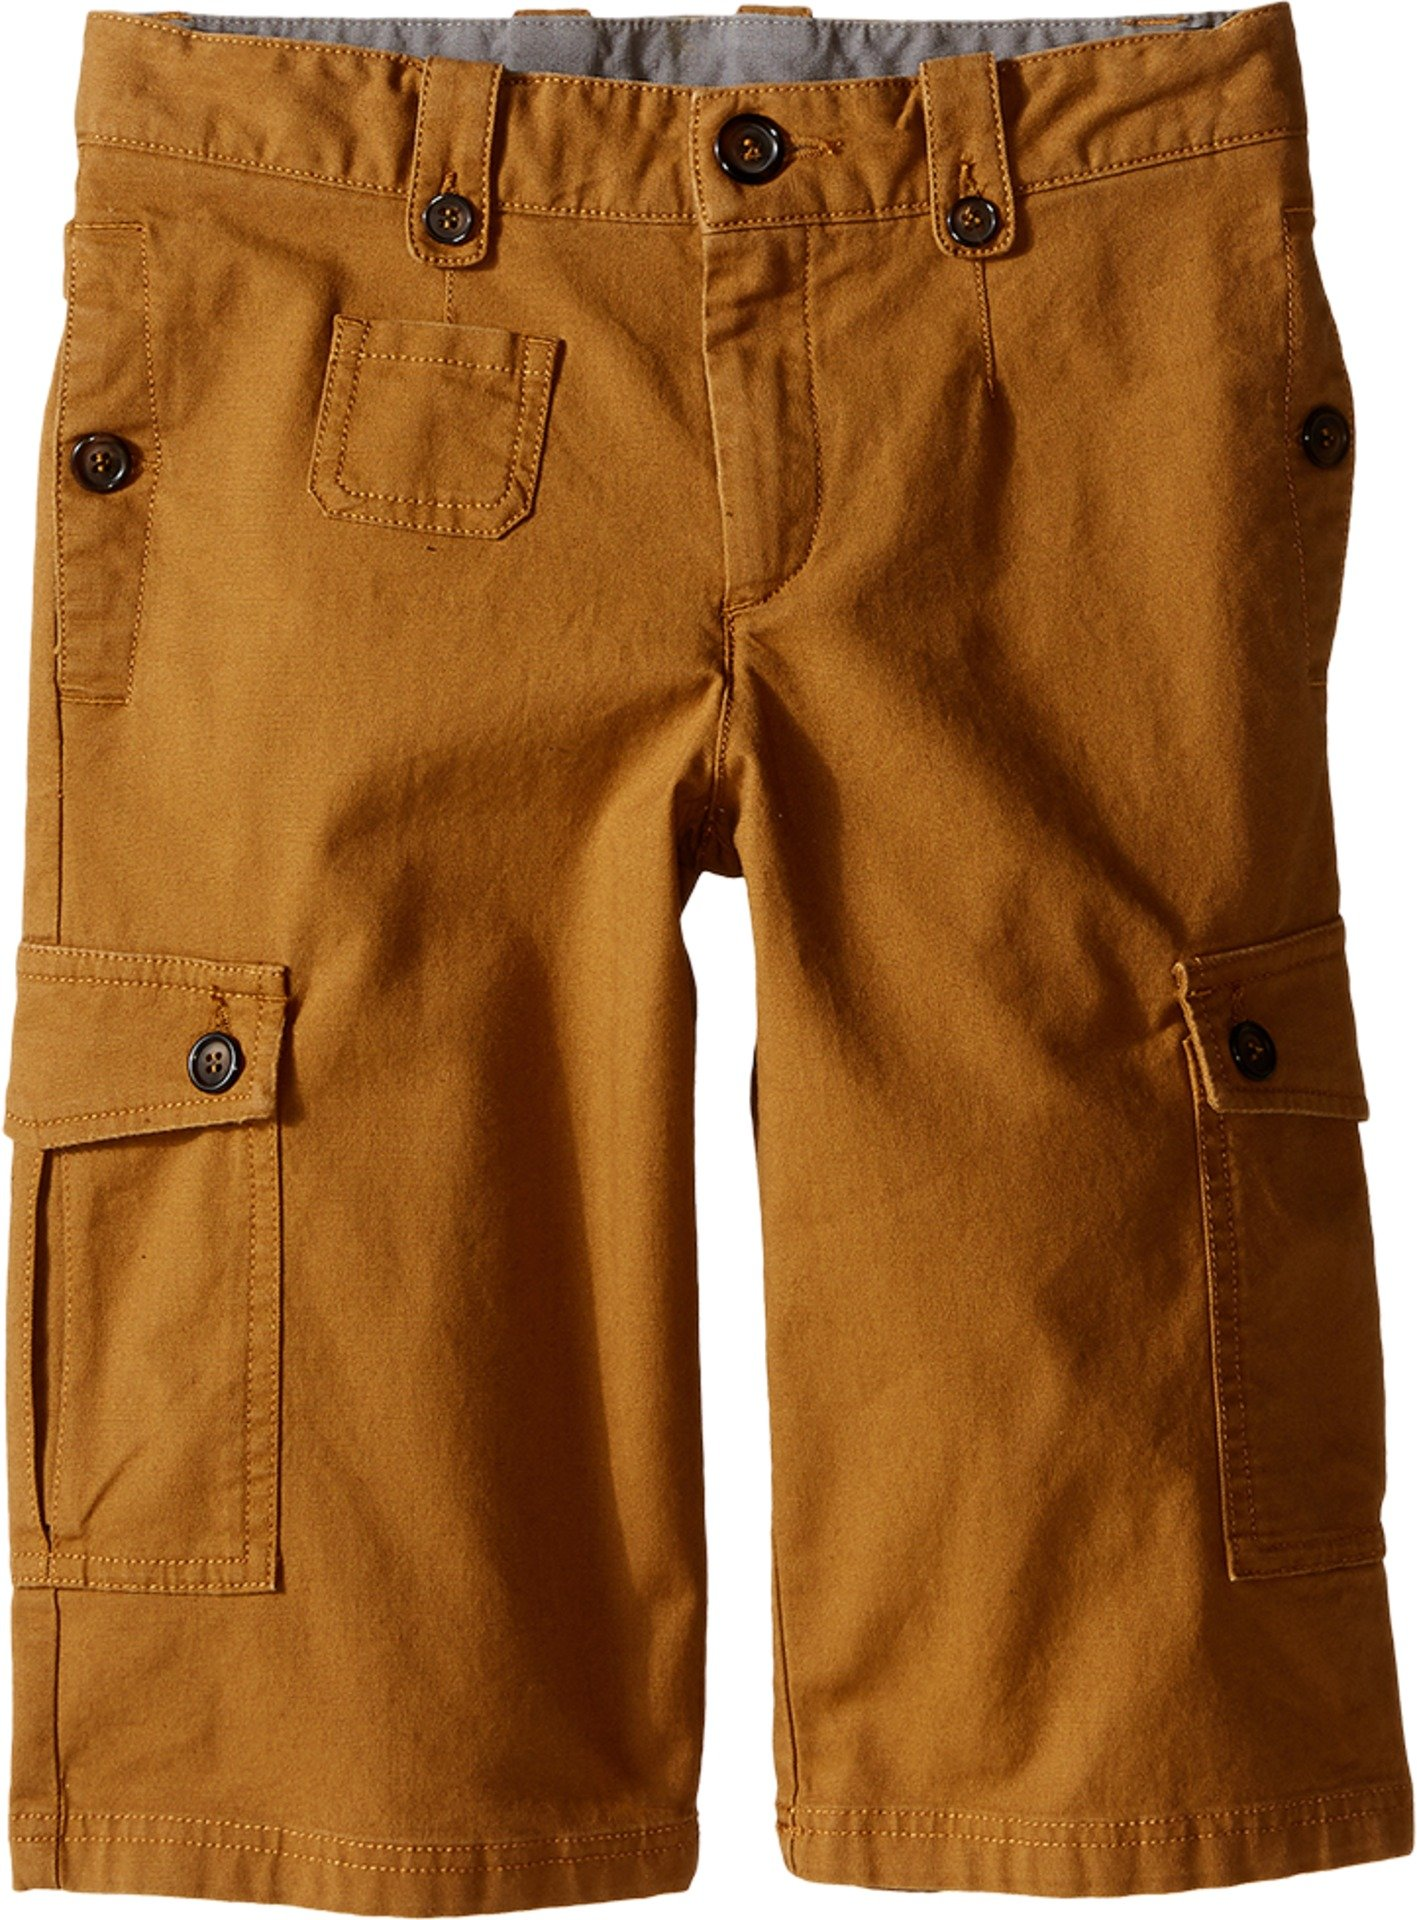 Dolce & Gabbana Kids Boy's Cargo Shorts (Big Kids) Rust Brown 8 (Big Kids) X One Size by Dolce & Gabbana